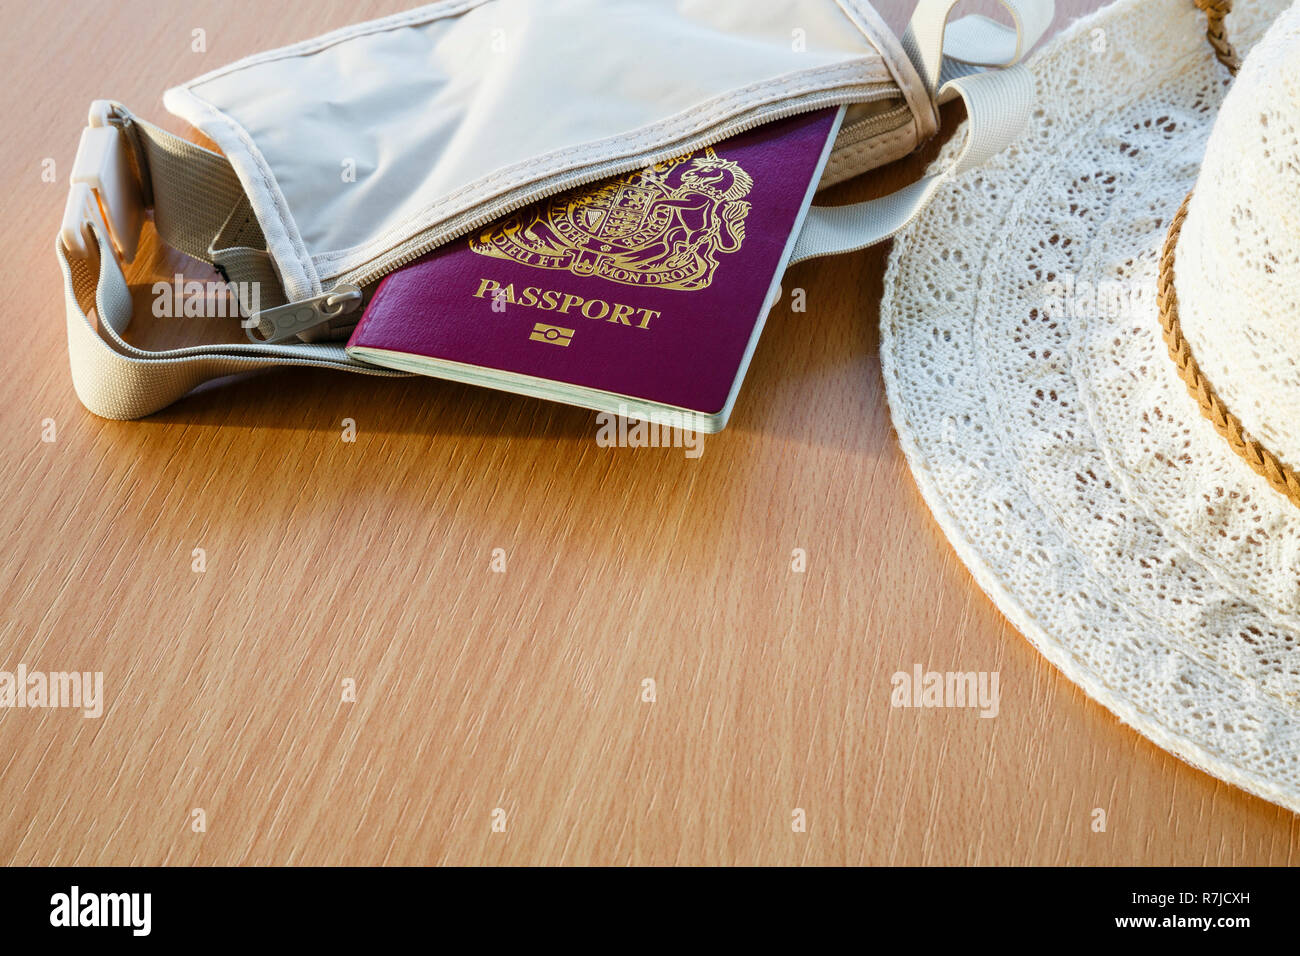 Travel things for travelling abroad British biometric passport in a wallet with women's sunhat on a table top. England, UK, Britain - Stock Image